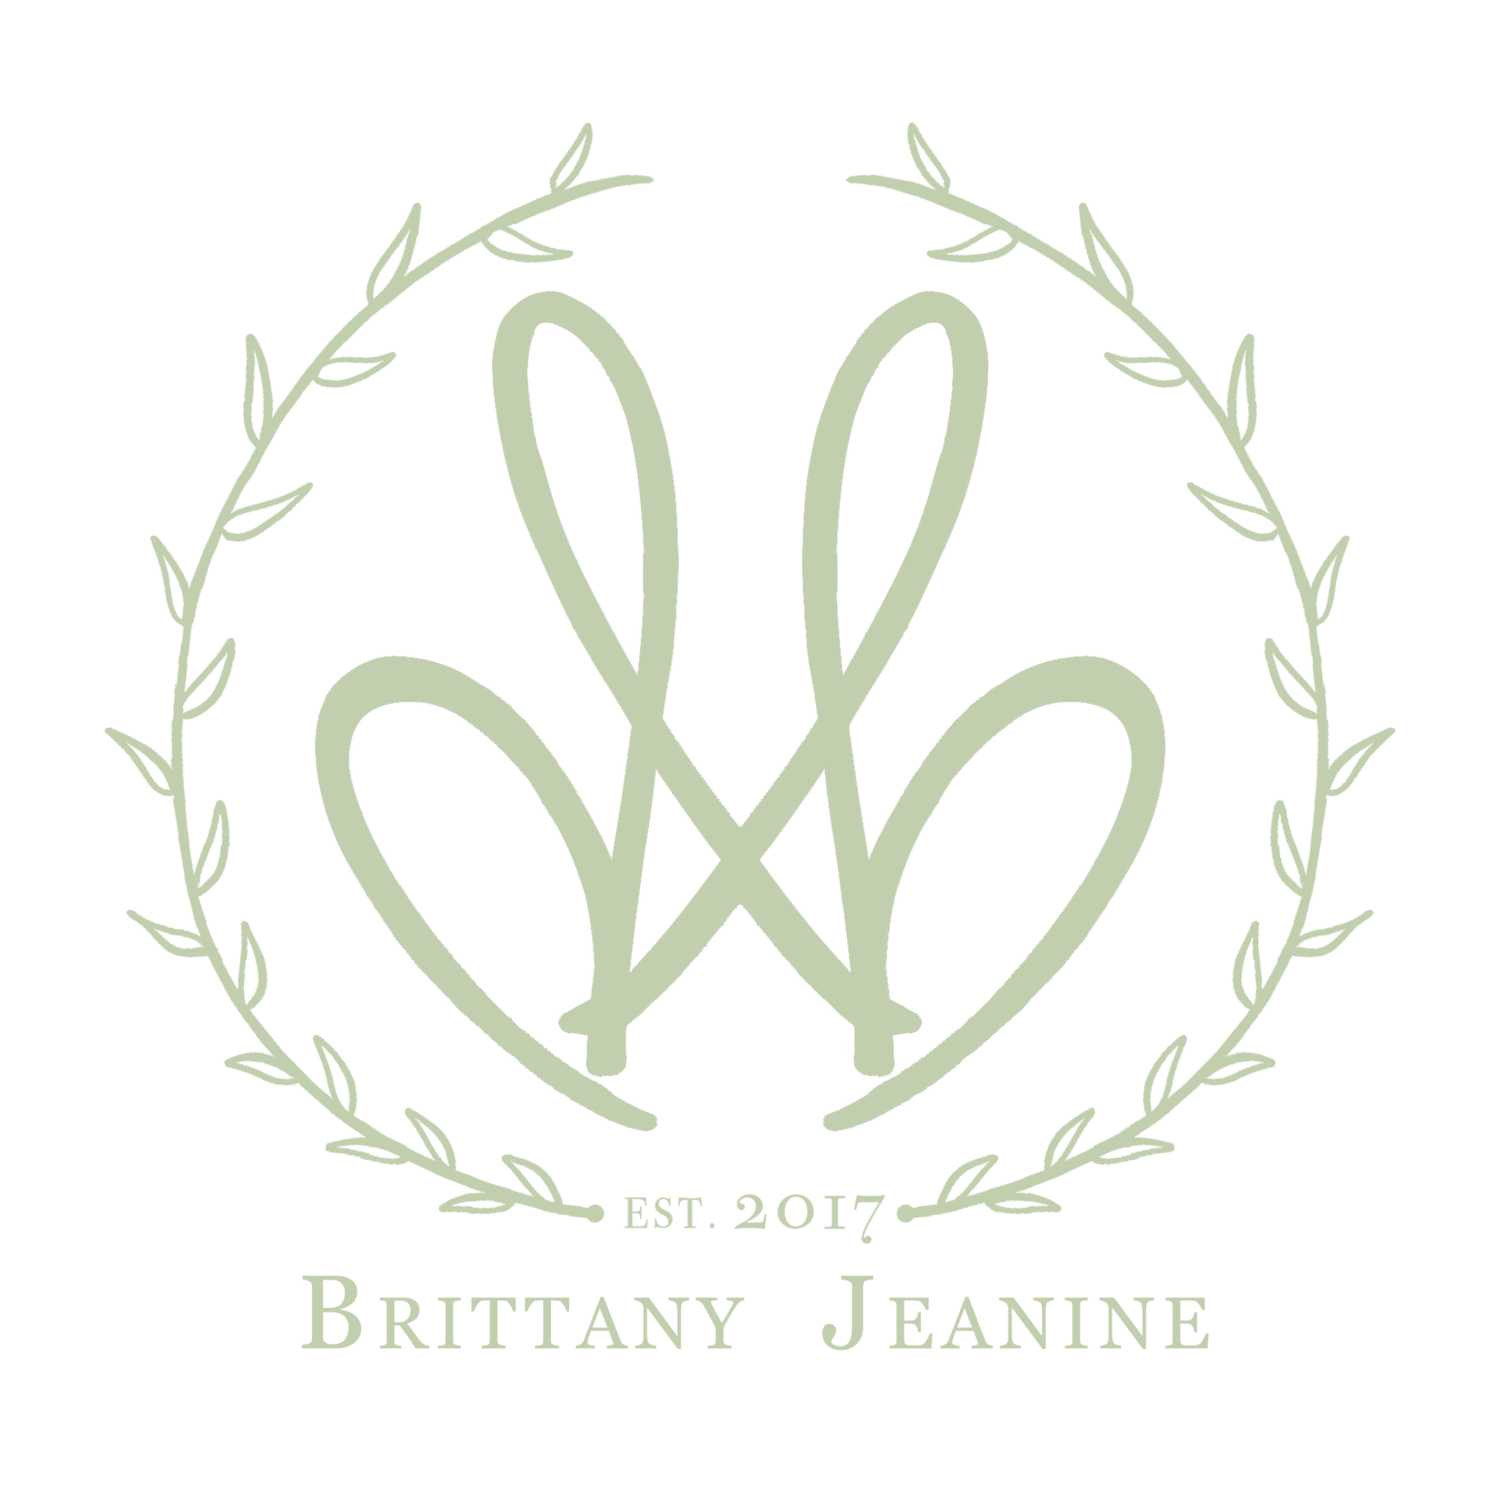 Brittany Jeanine